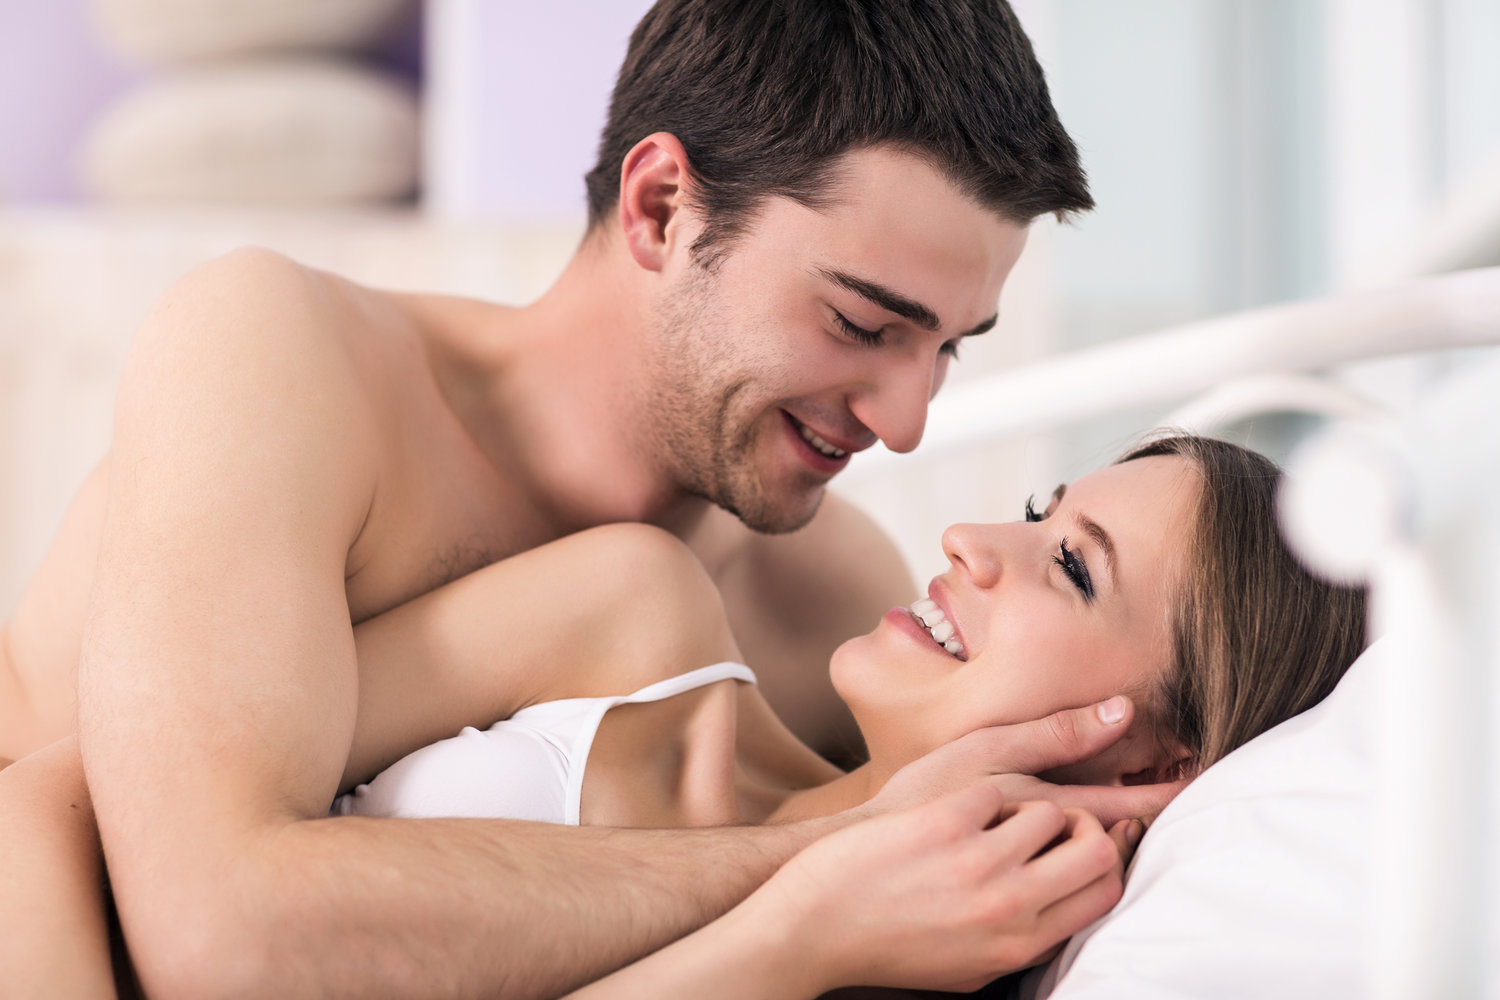 Sex Therapy improves intimate connection